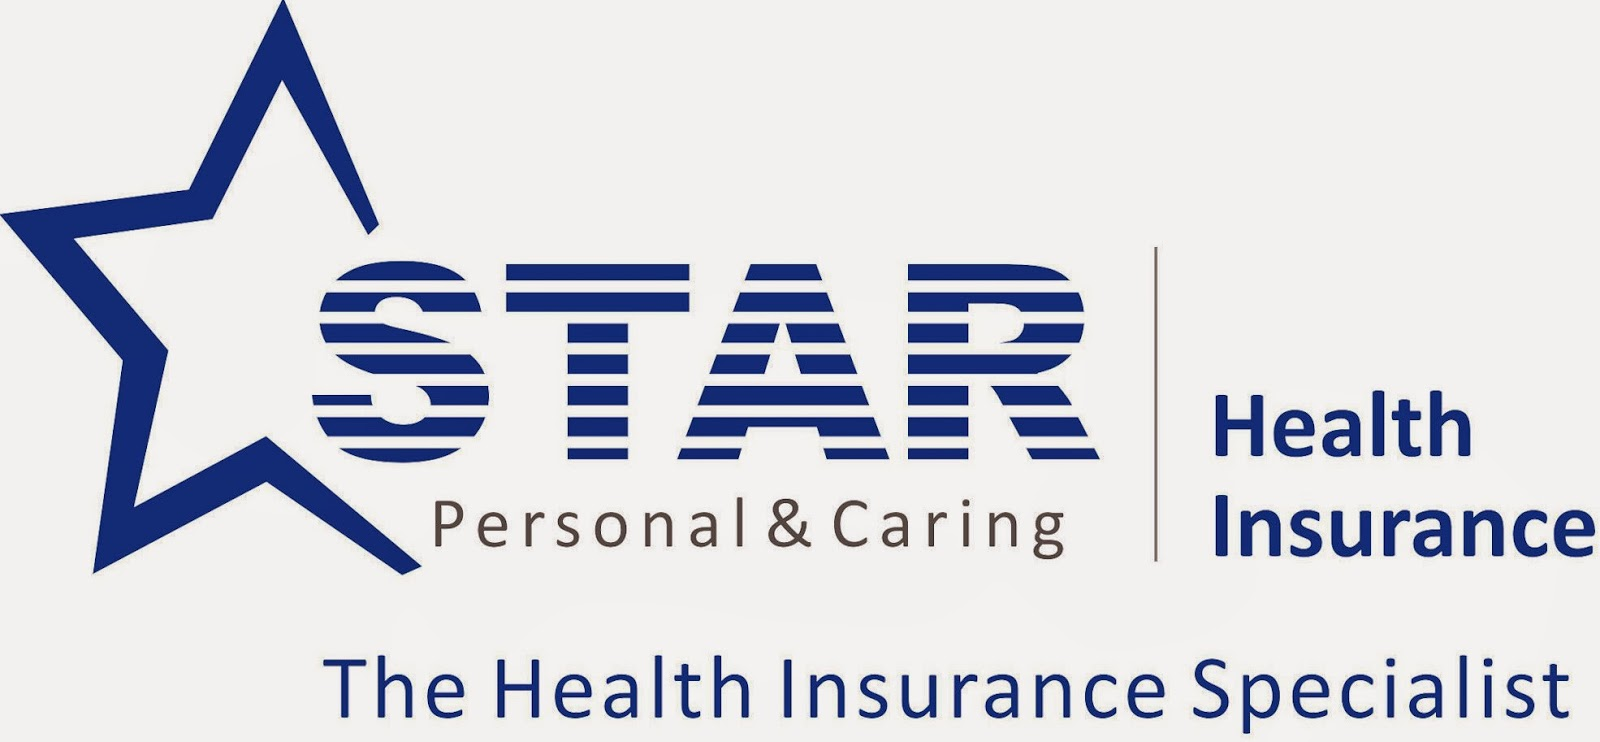 Star-Health-Insurance-Company-Limited.jpg